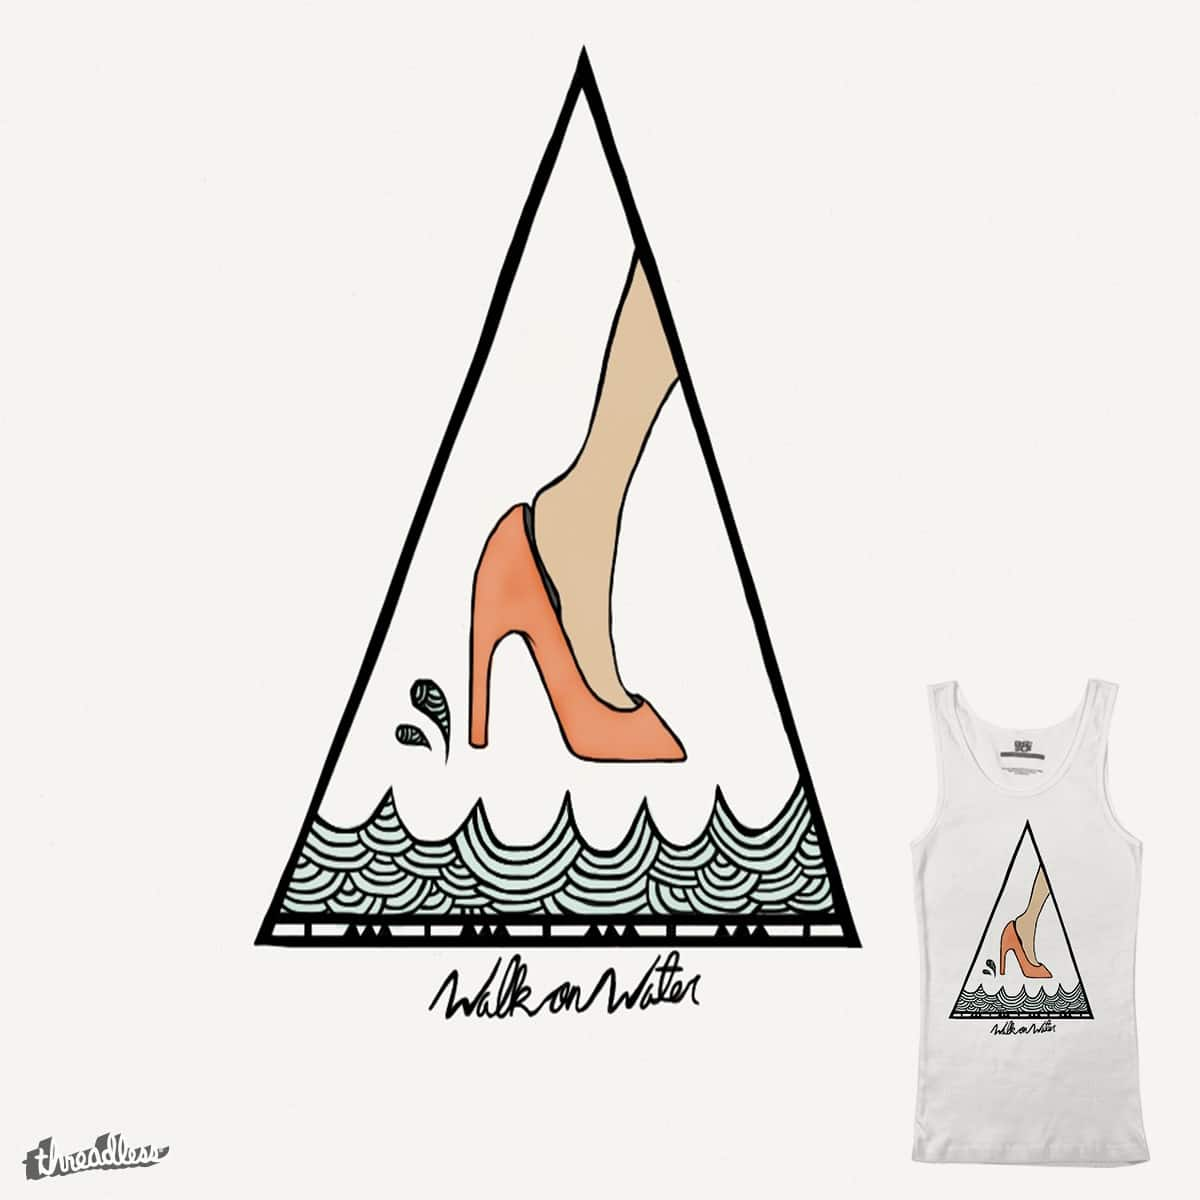 Walk on Water by morgan.janielle on Threadless